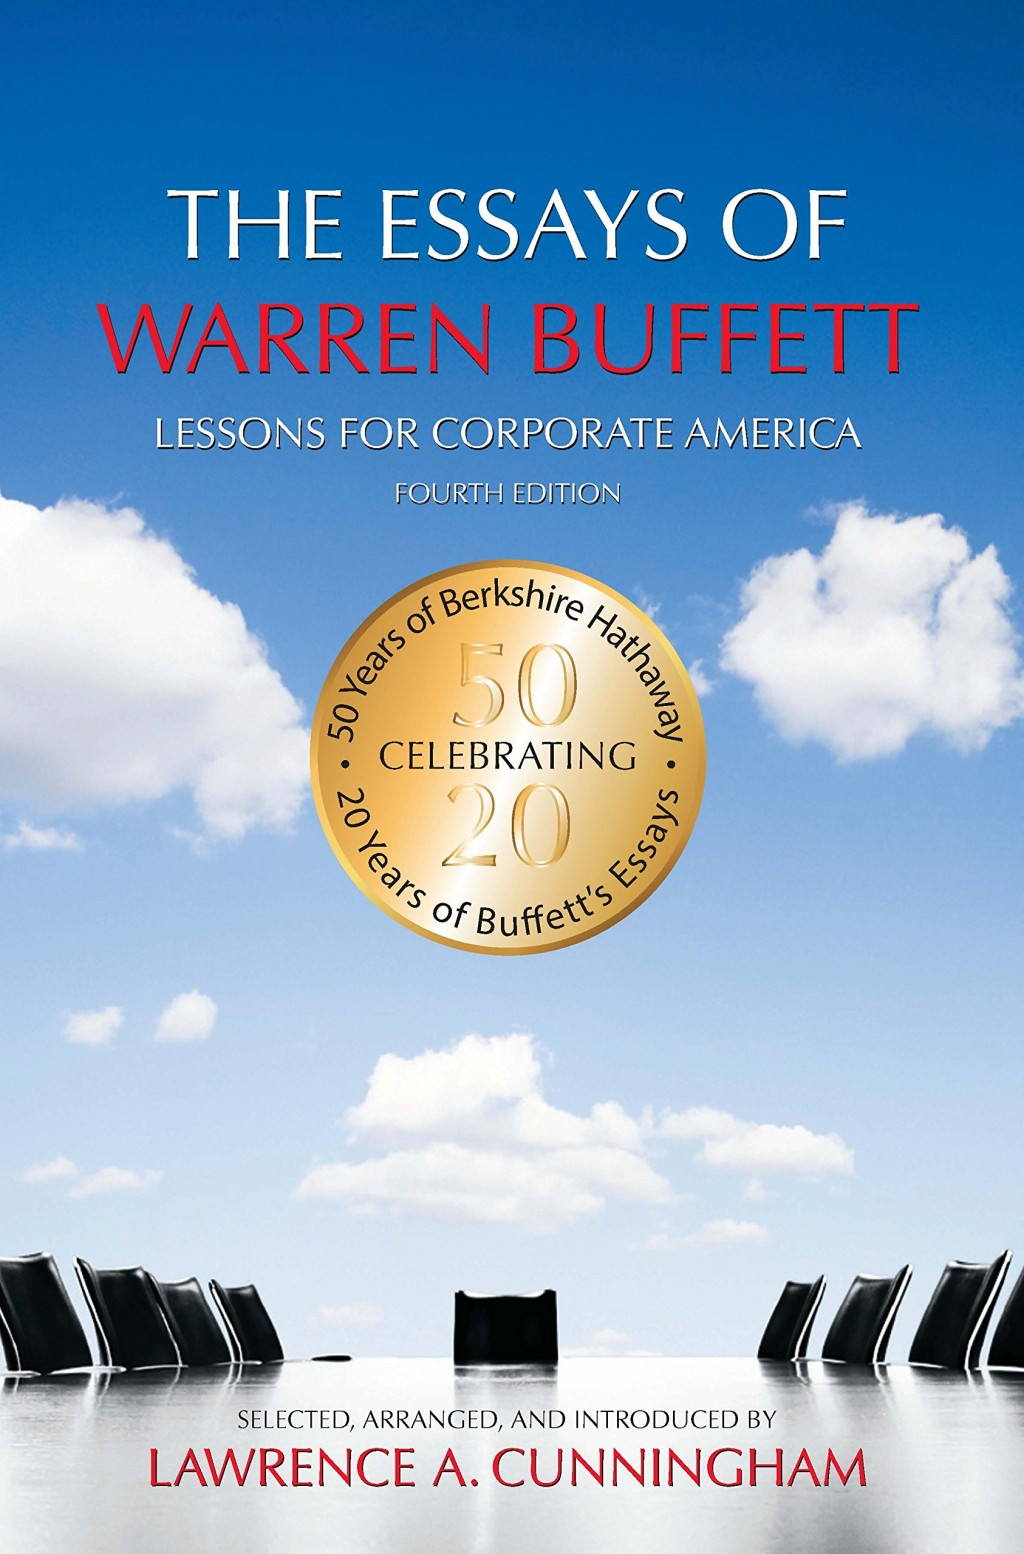 011 Essay Example 81wiv2brymel The Essays Of Warren Buffett Lessons For Investors And Striking Managers 4th Edition Free Pdf Large